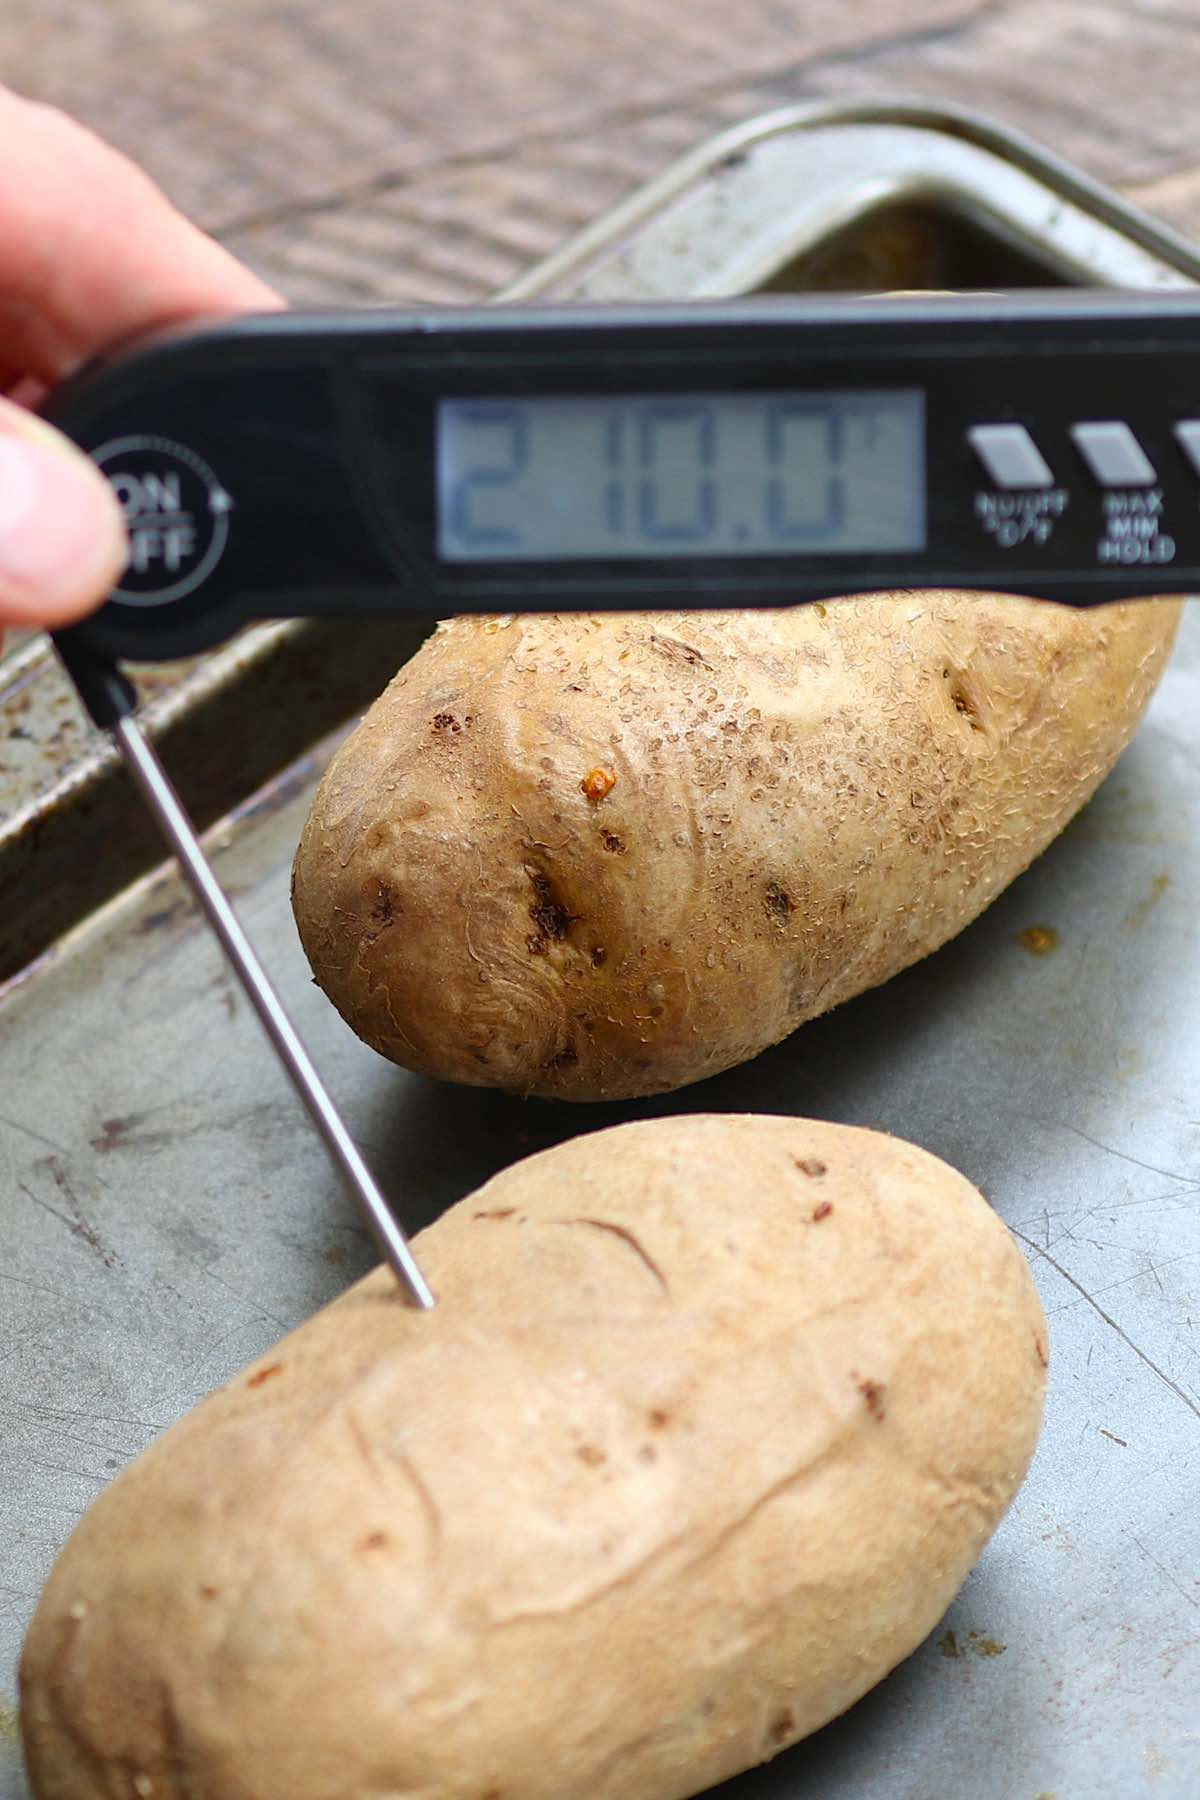 Inserting an instant-read thermometer into the middle of a potato to determine how long to bake a potato. It's done at 210 degrees F.